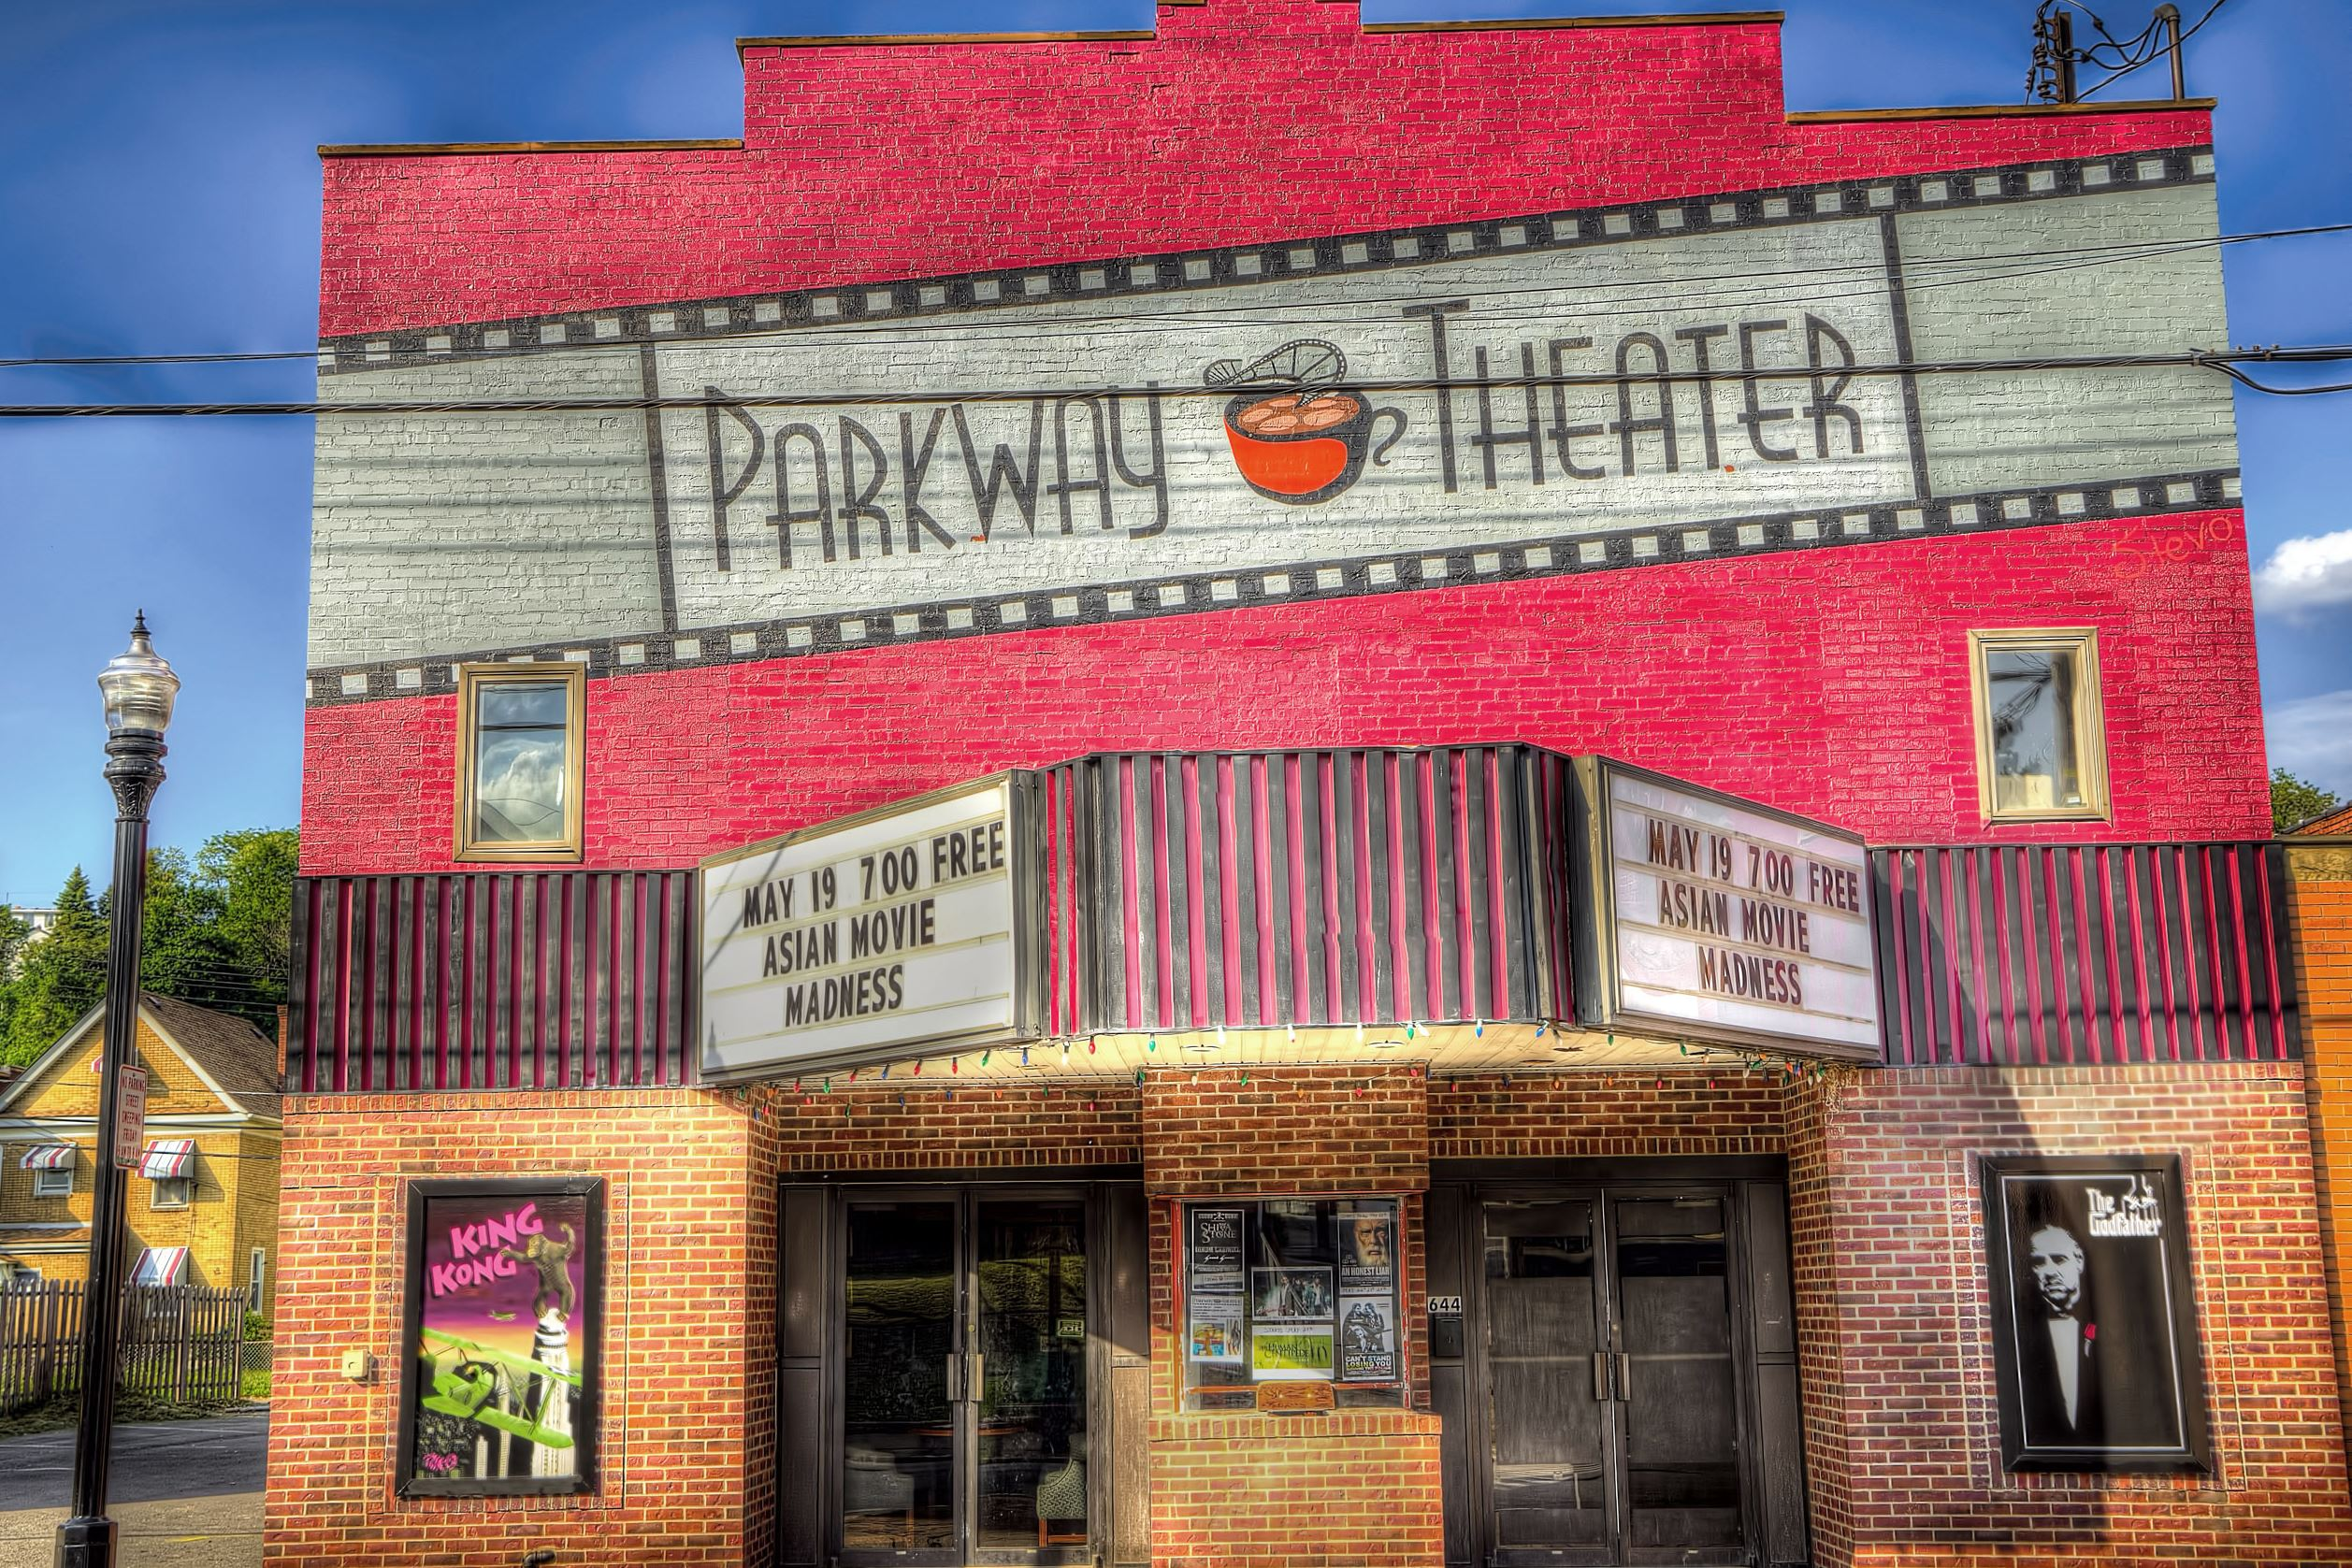 parkway_theater The Parkway Theater in Stowe: the little cinema that could